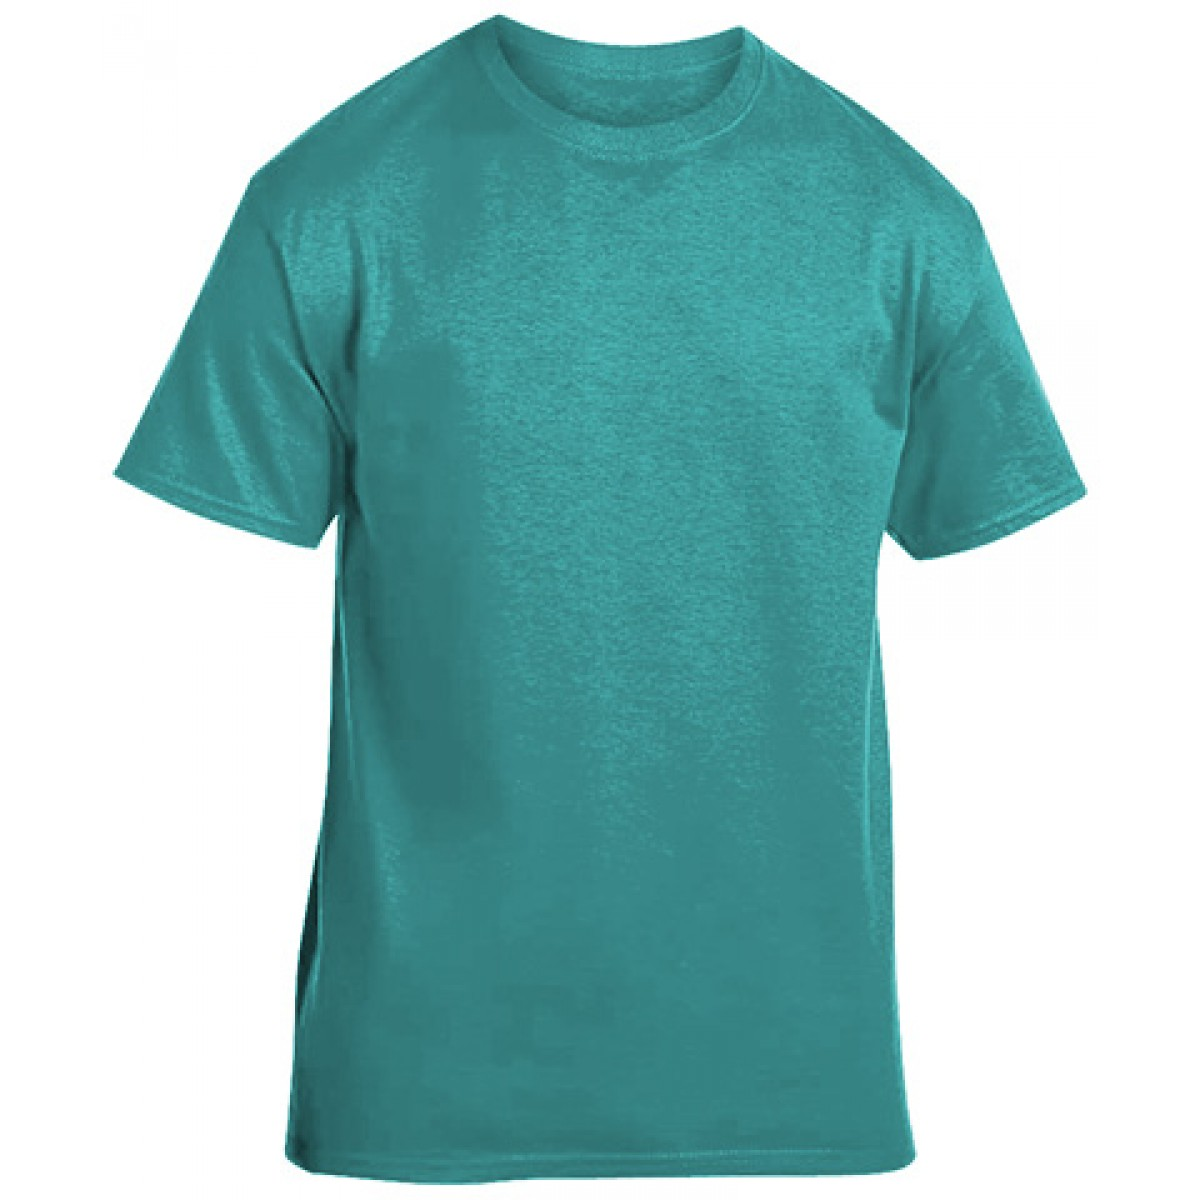 Soft 100% Cotton T-Shirt-Jade-3XL